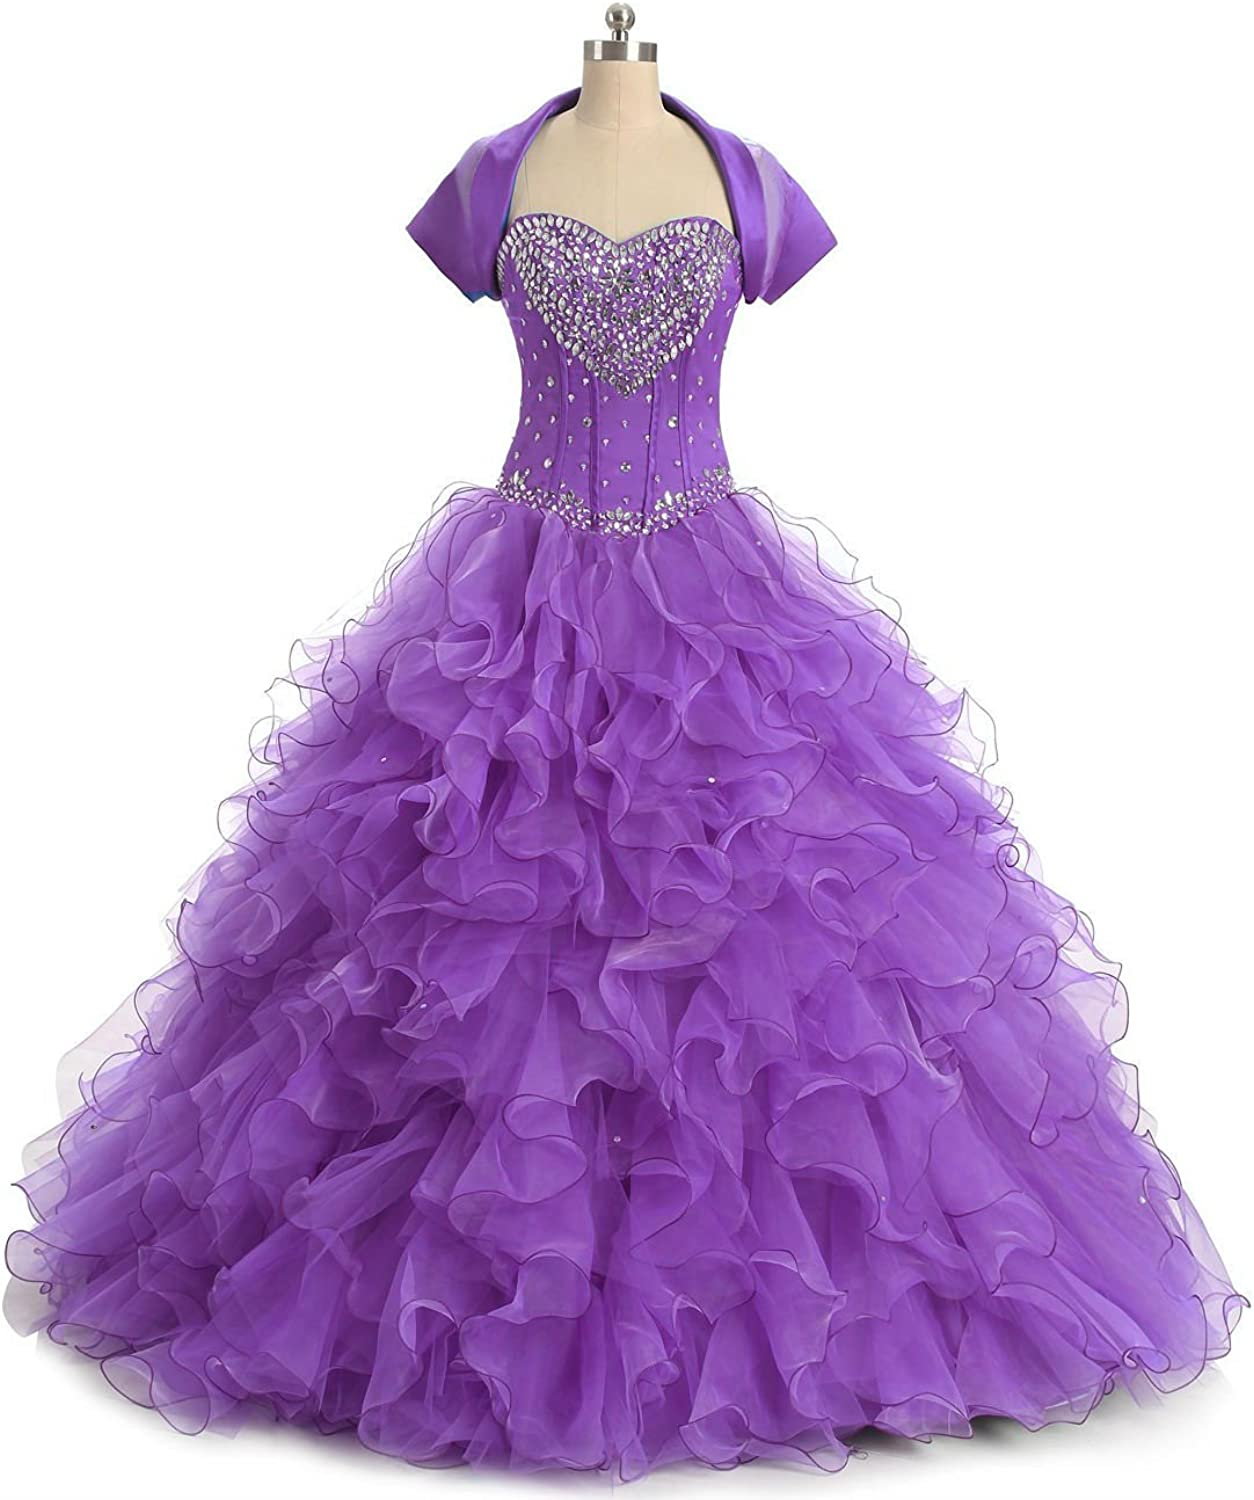 QY Bride Princess Organza Quinceanera Prom Dress with Short Sleeve Jacket